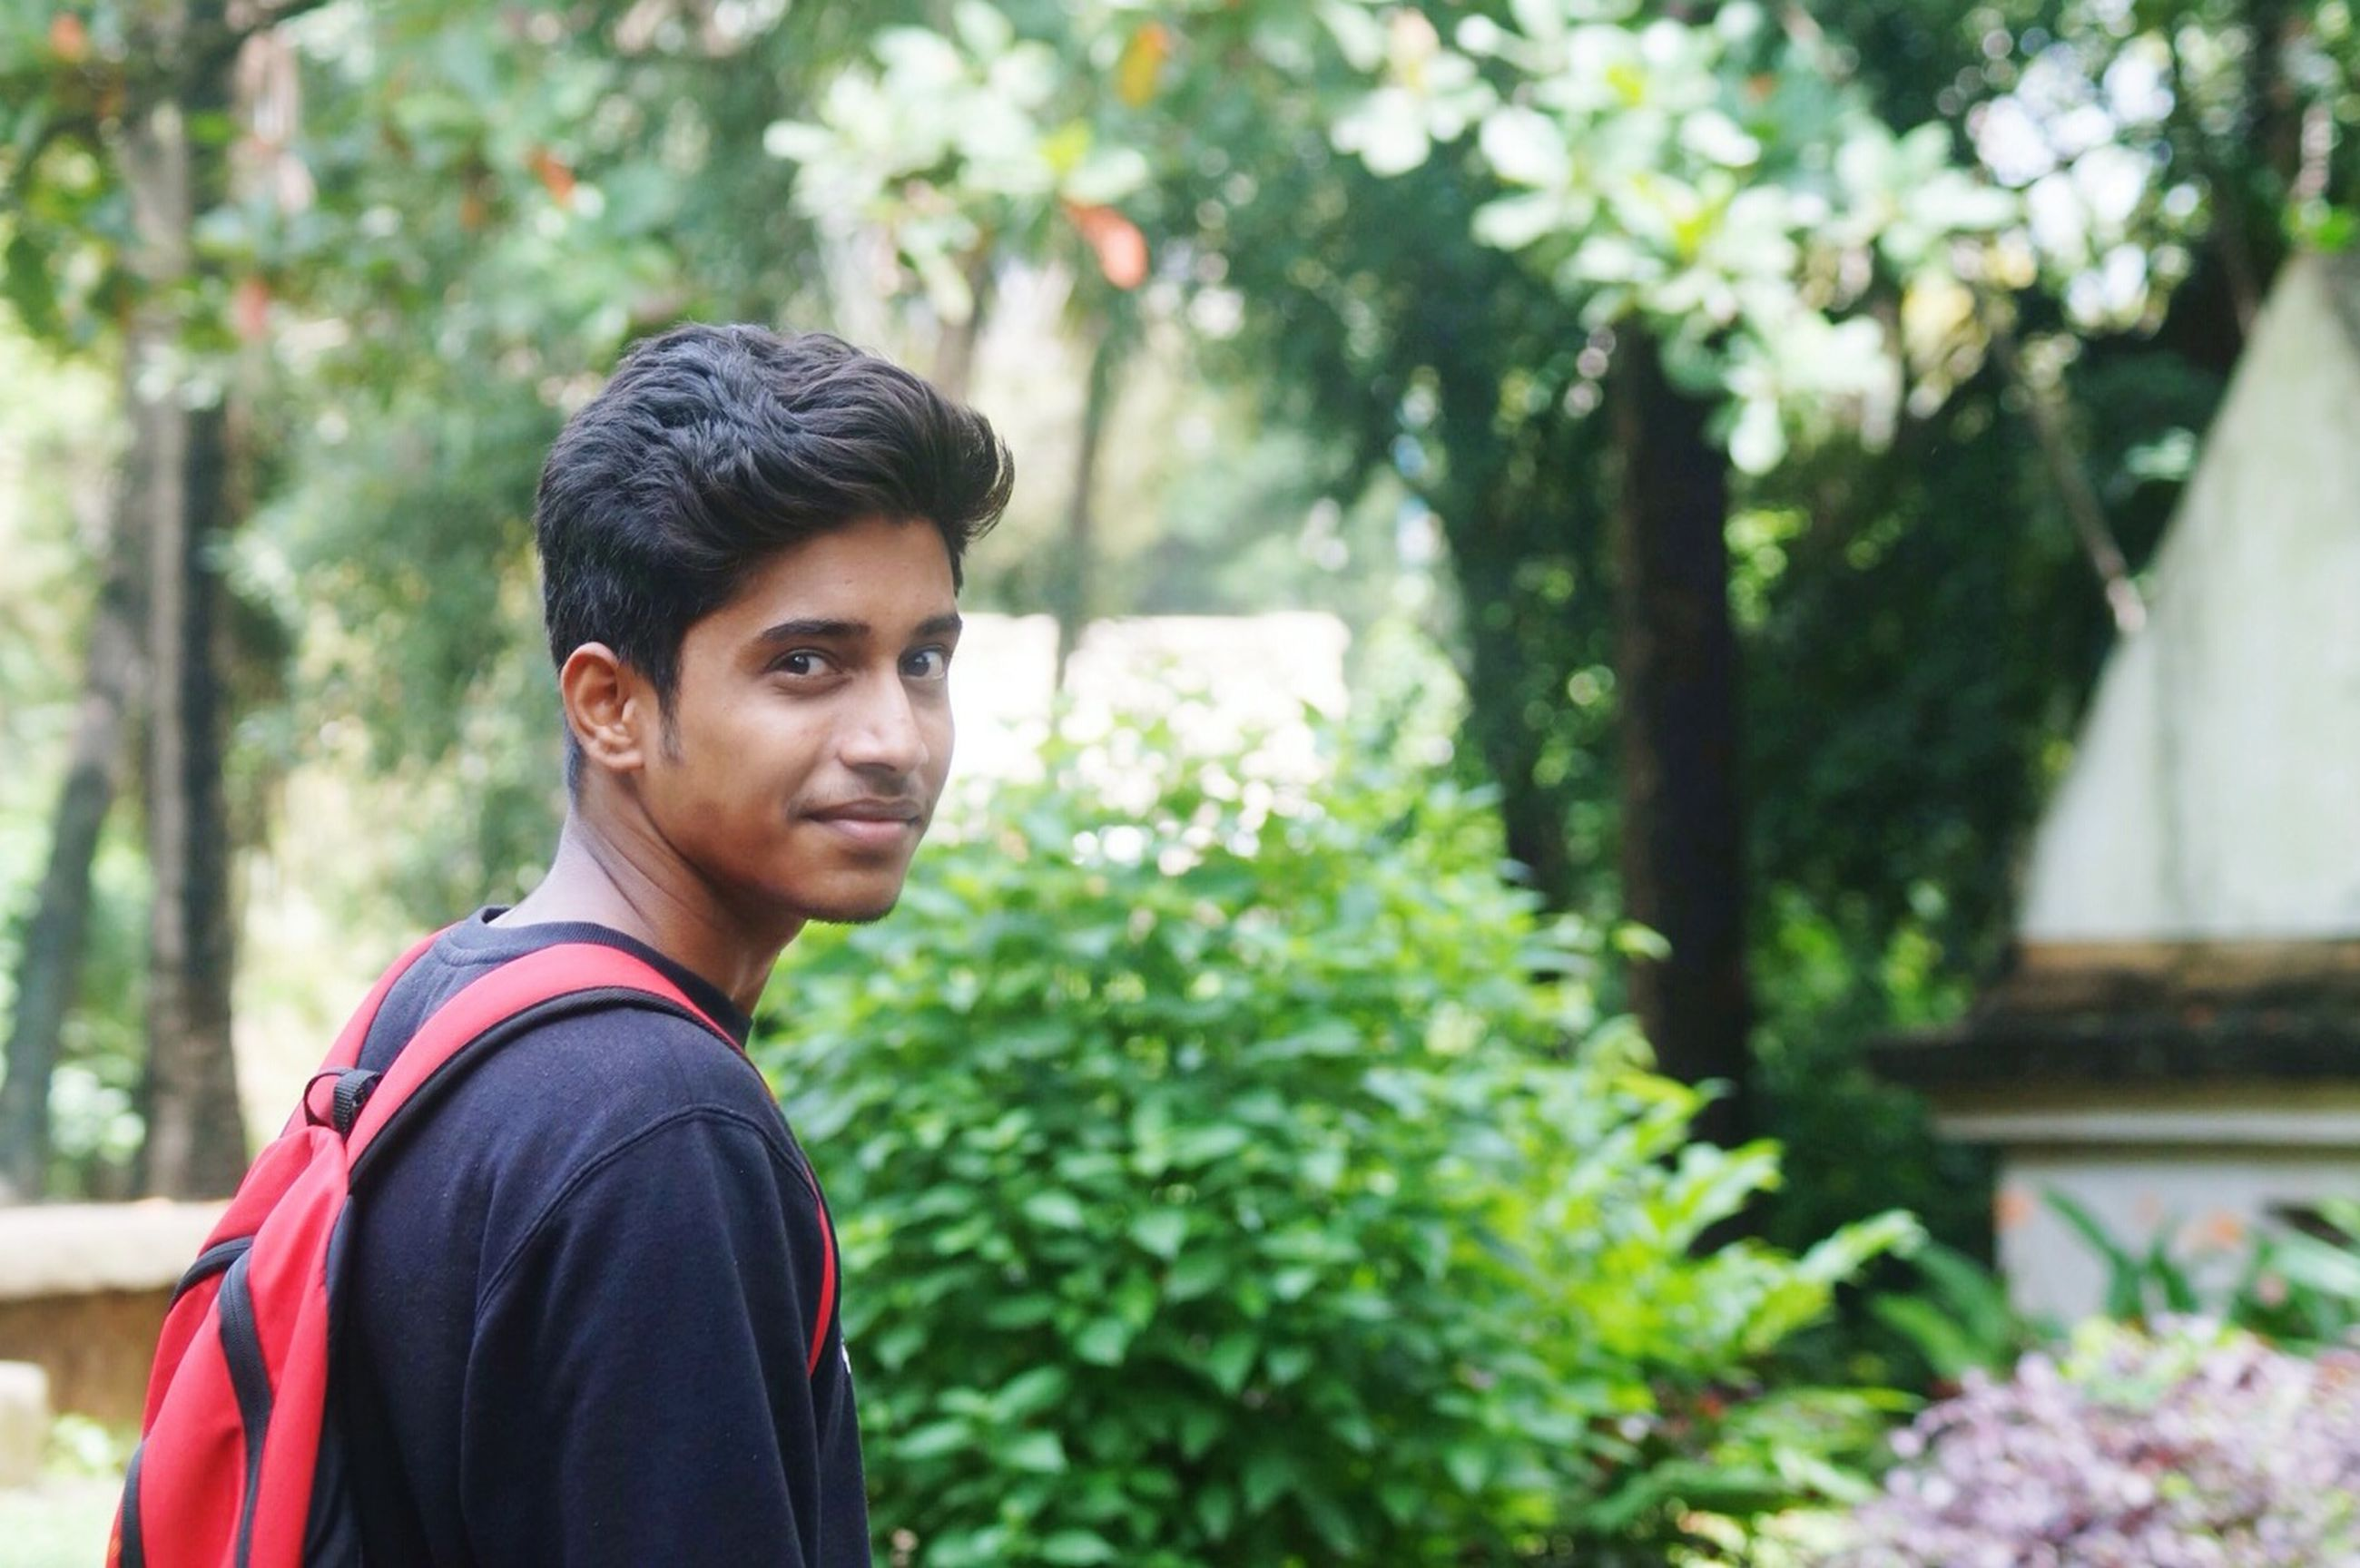 person, lifestyles, young adult, looking at camera, casual clothing, portrait, leisure activity, focus on foreground, smiling, front view, young men, standing, waist up, tree, headshot, happiness